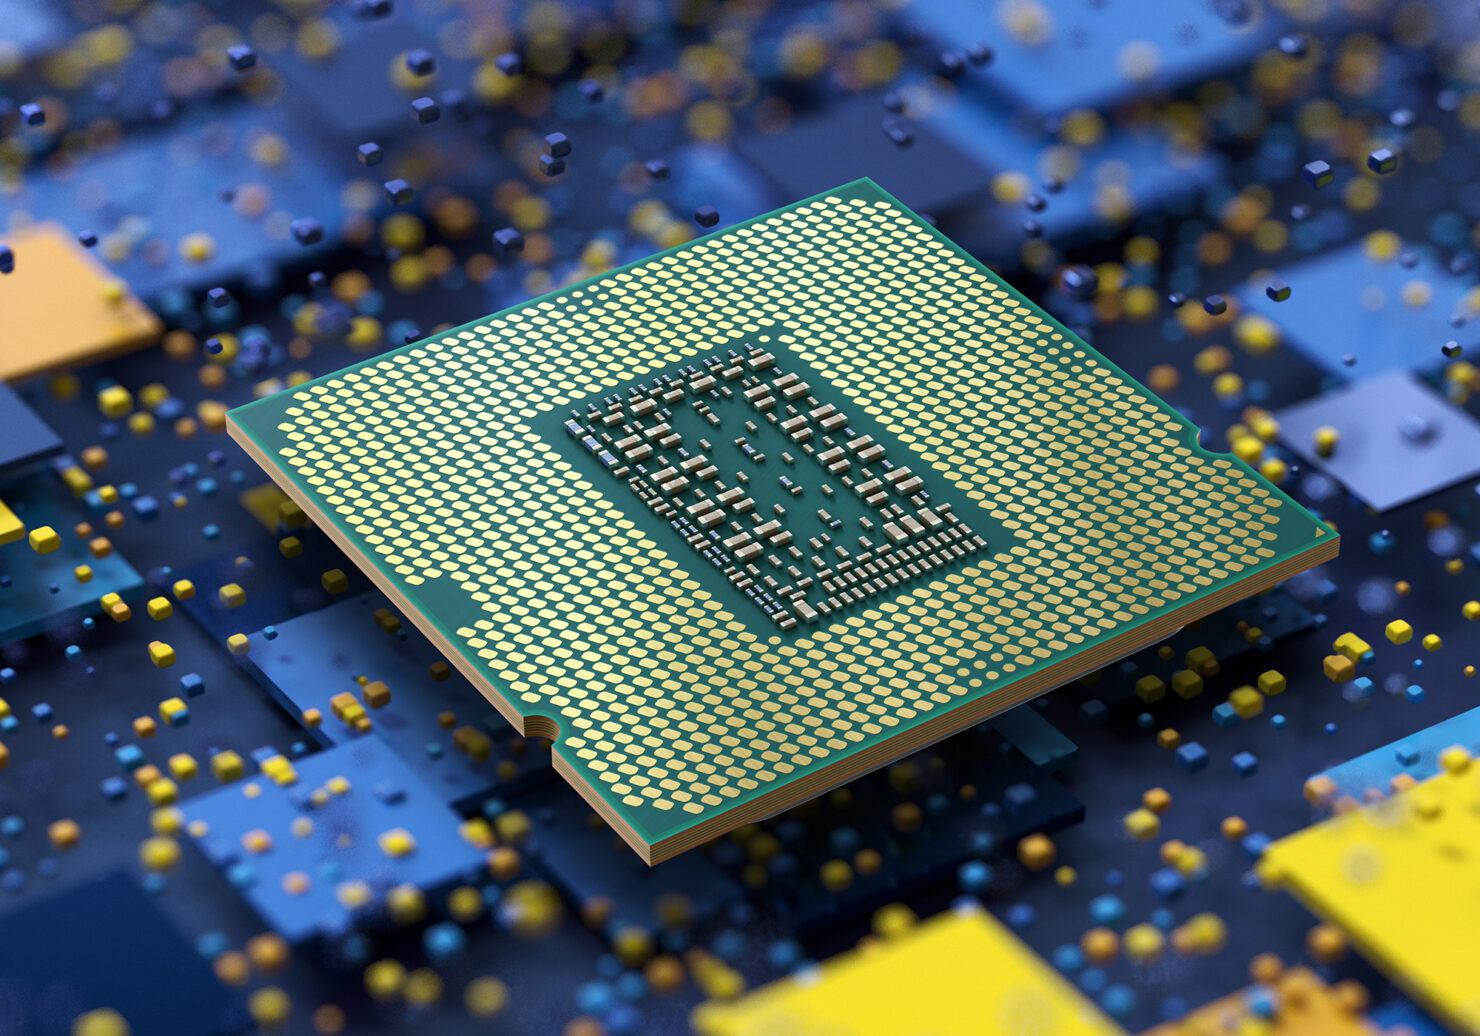 intel-confirms-several-next-gen-cpu-&-gpu-families:-raptor-lake,-meteor-lake,-xe-hpg-dg2-gaming-graphics-cards,-ponte-vecchio-600w-liquid-cooled-&-emerald-rapids-hedt-chips